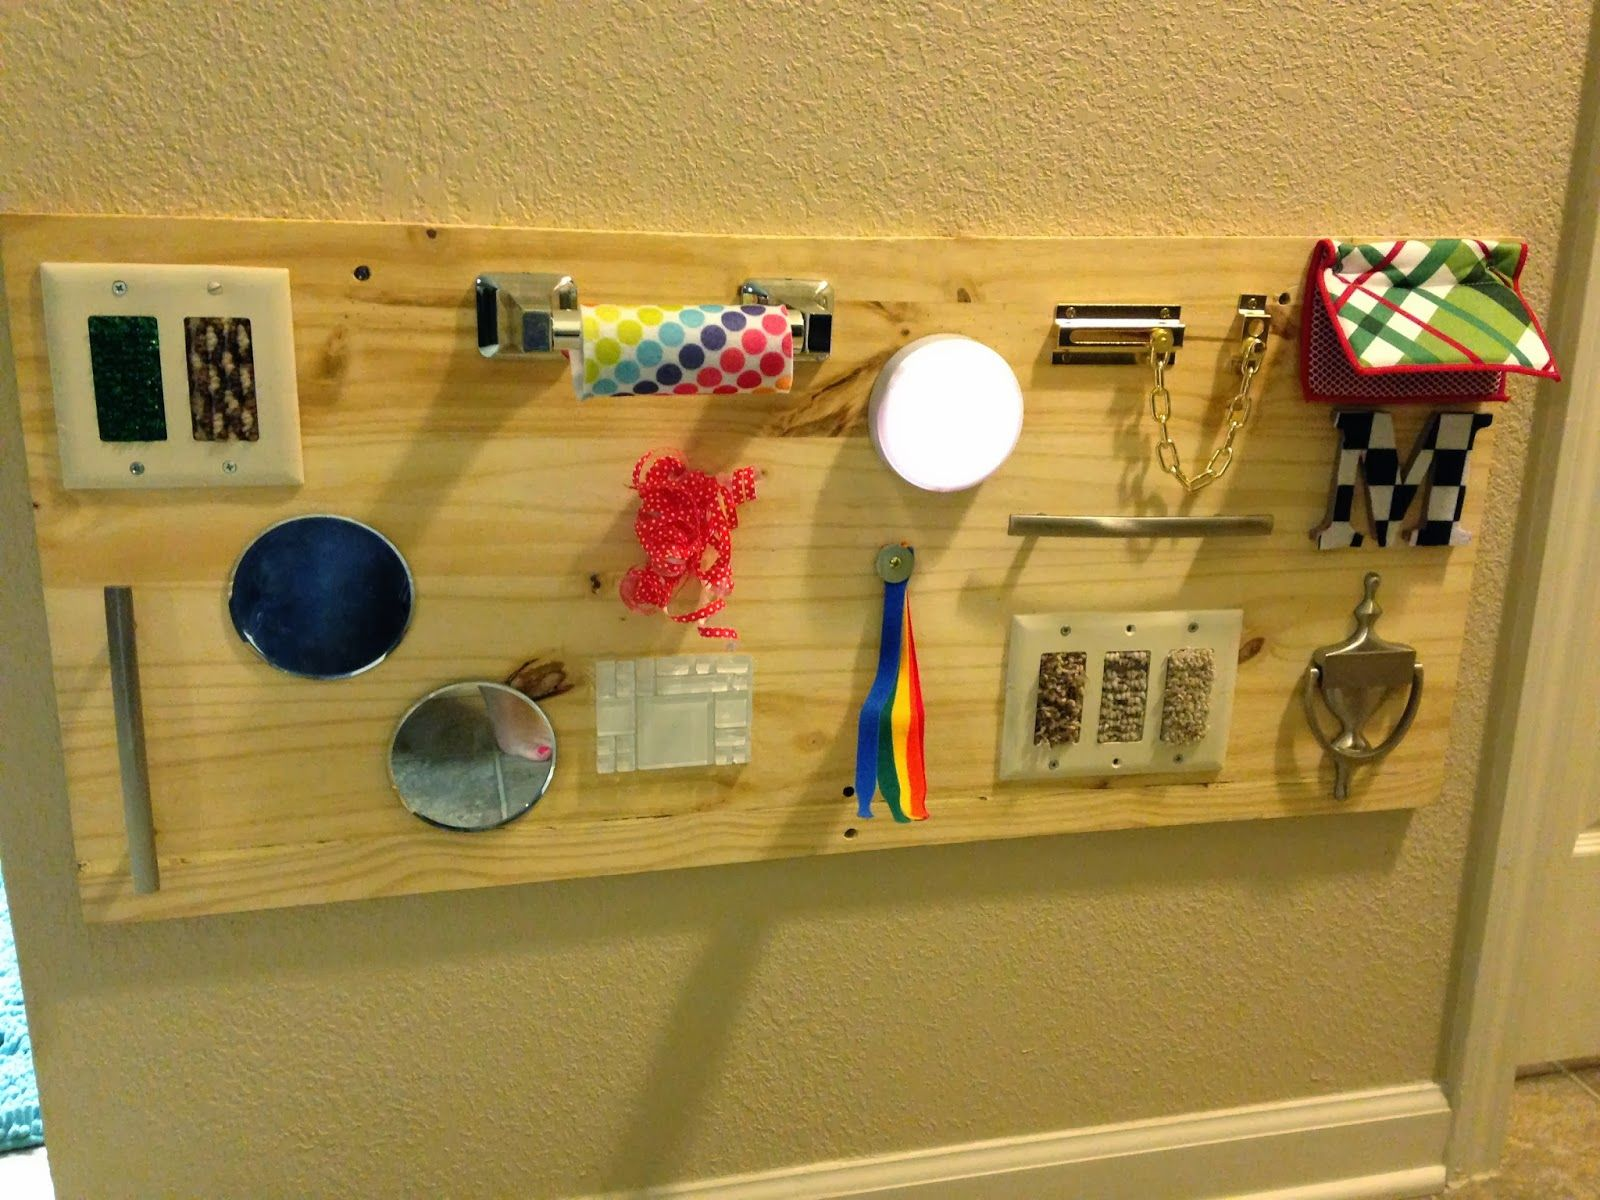 Sensory Toys For 12 Month Old : Sensory boards for year olds google search